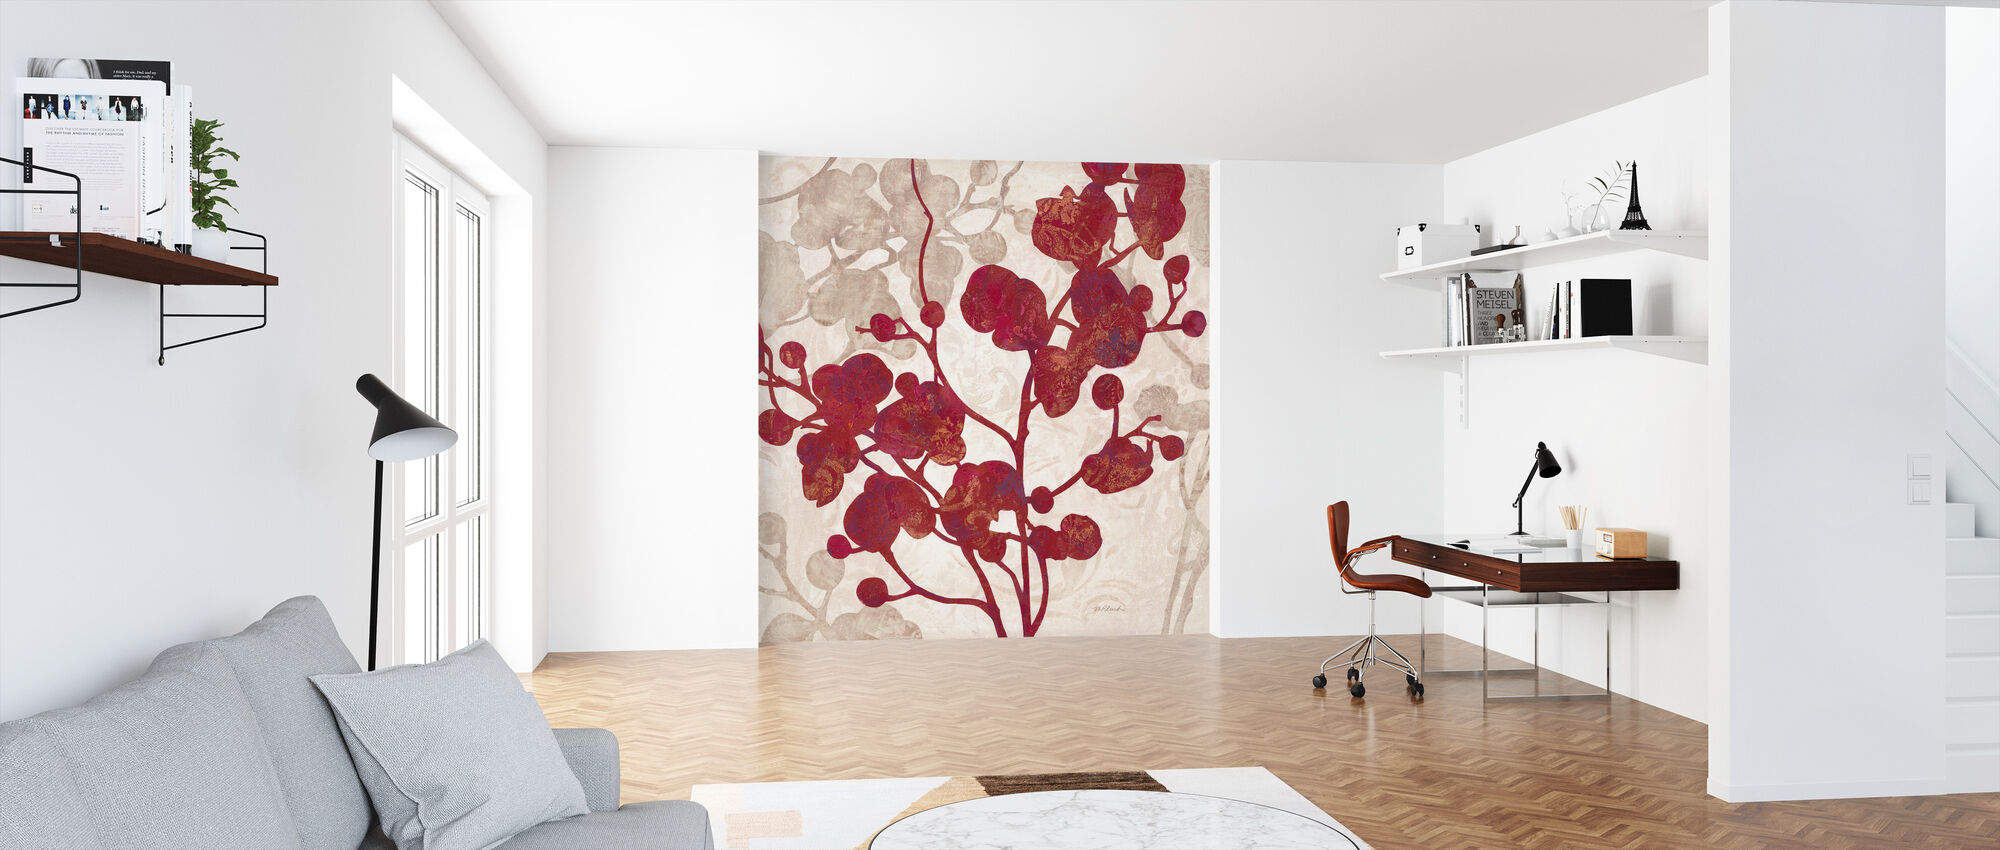 Luscious Orchid 2 - Wallpaper - Office